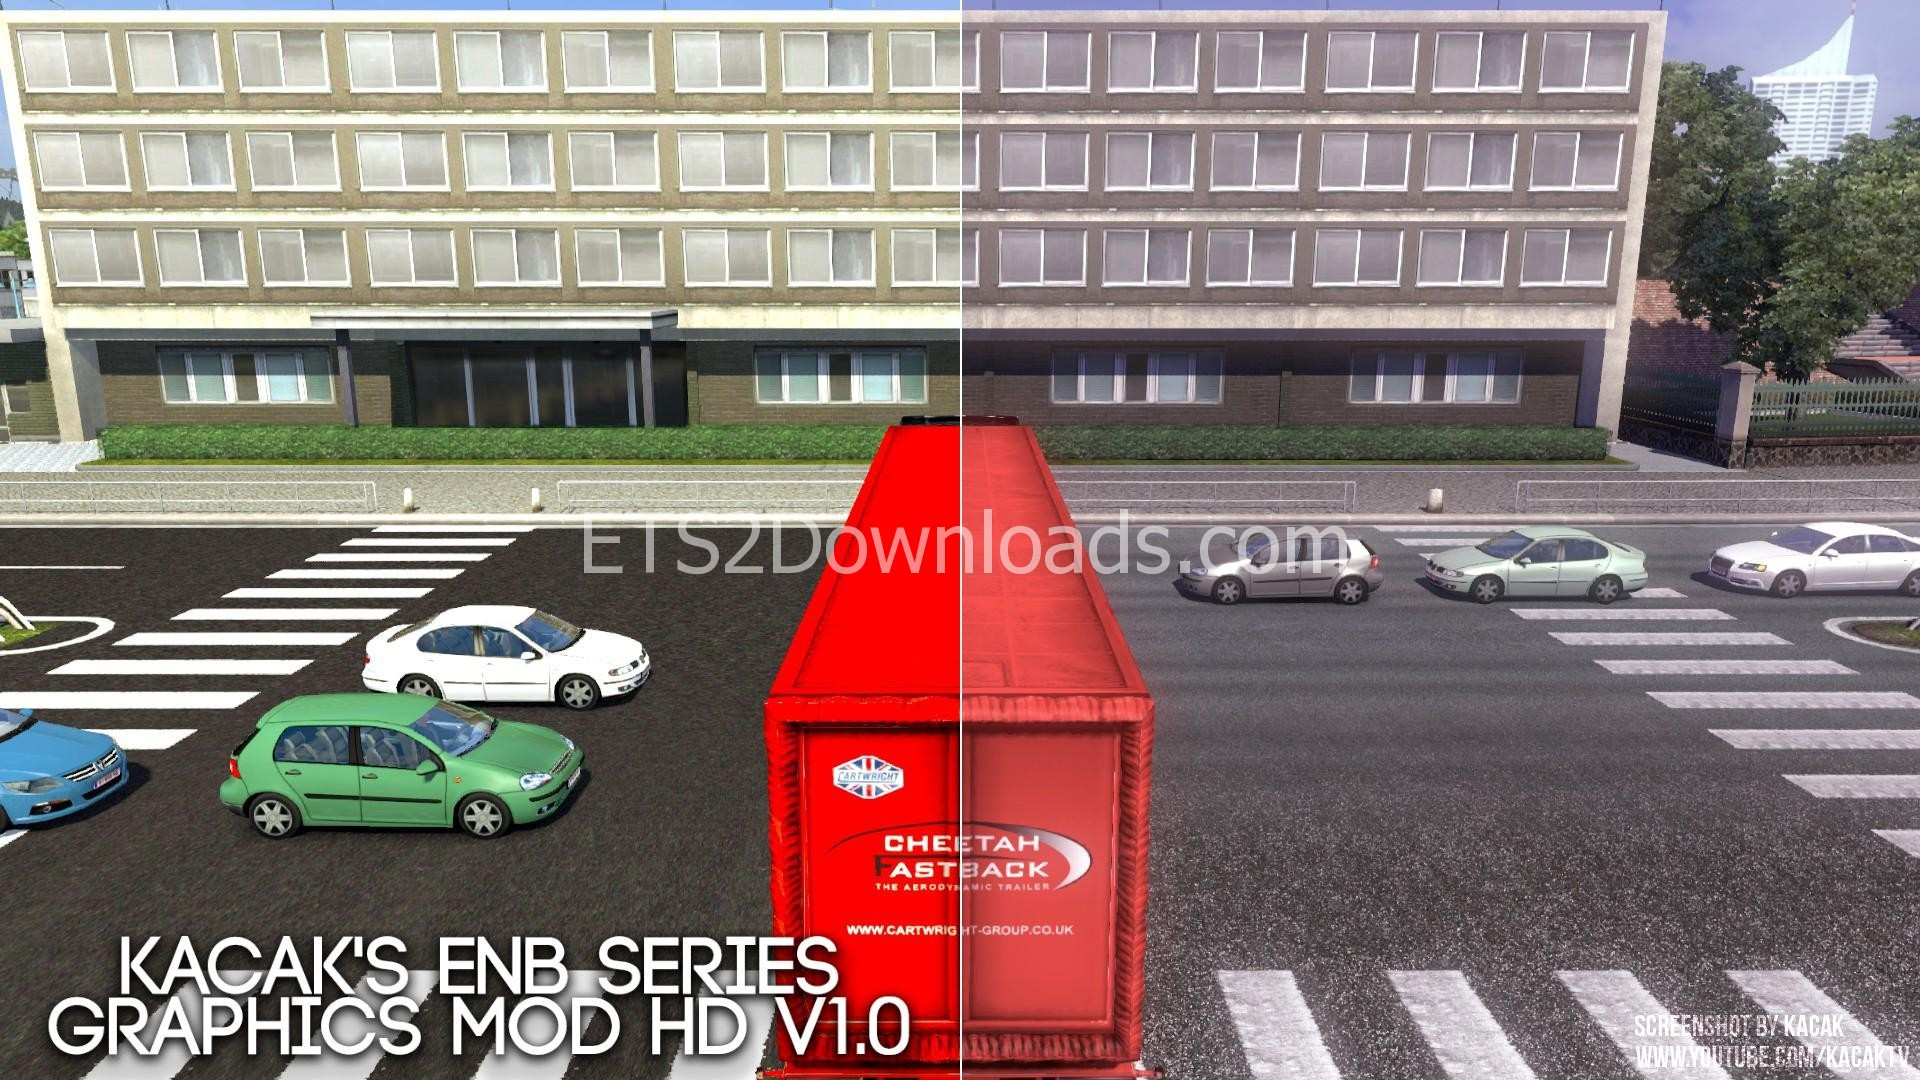 kacaks-enb-series-graphics-mod-hd-ets2